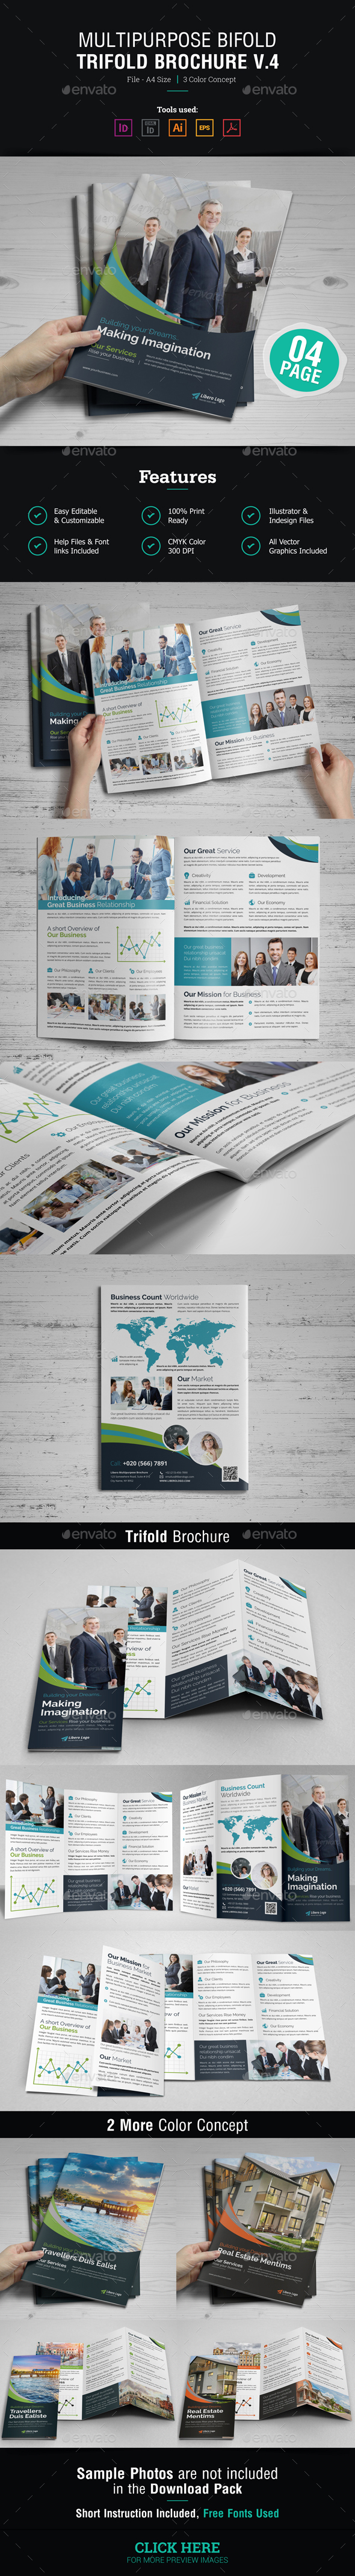 Multipurpose Bifold & Trifold Brochure v.4 - Corporate Brochures